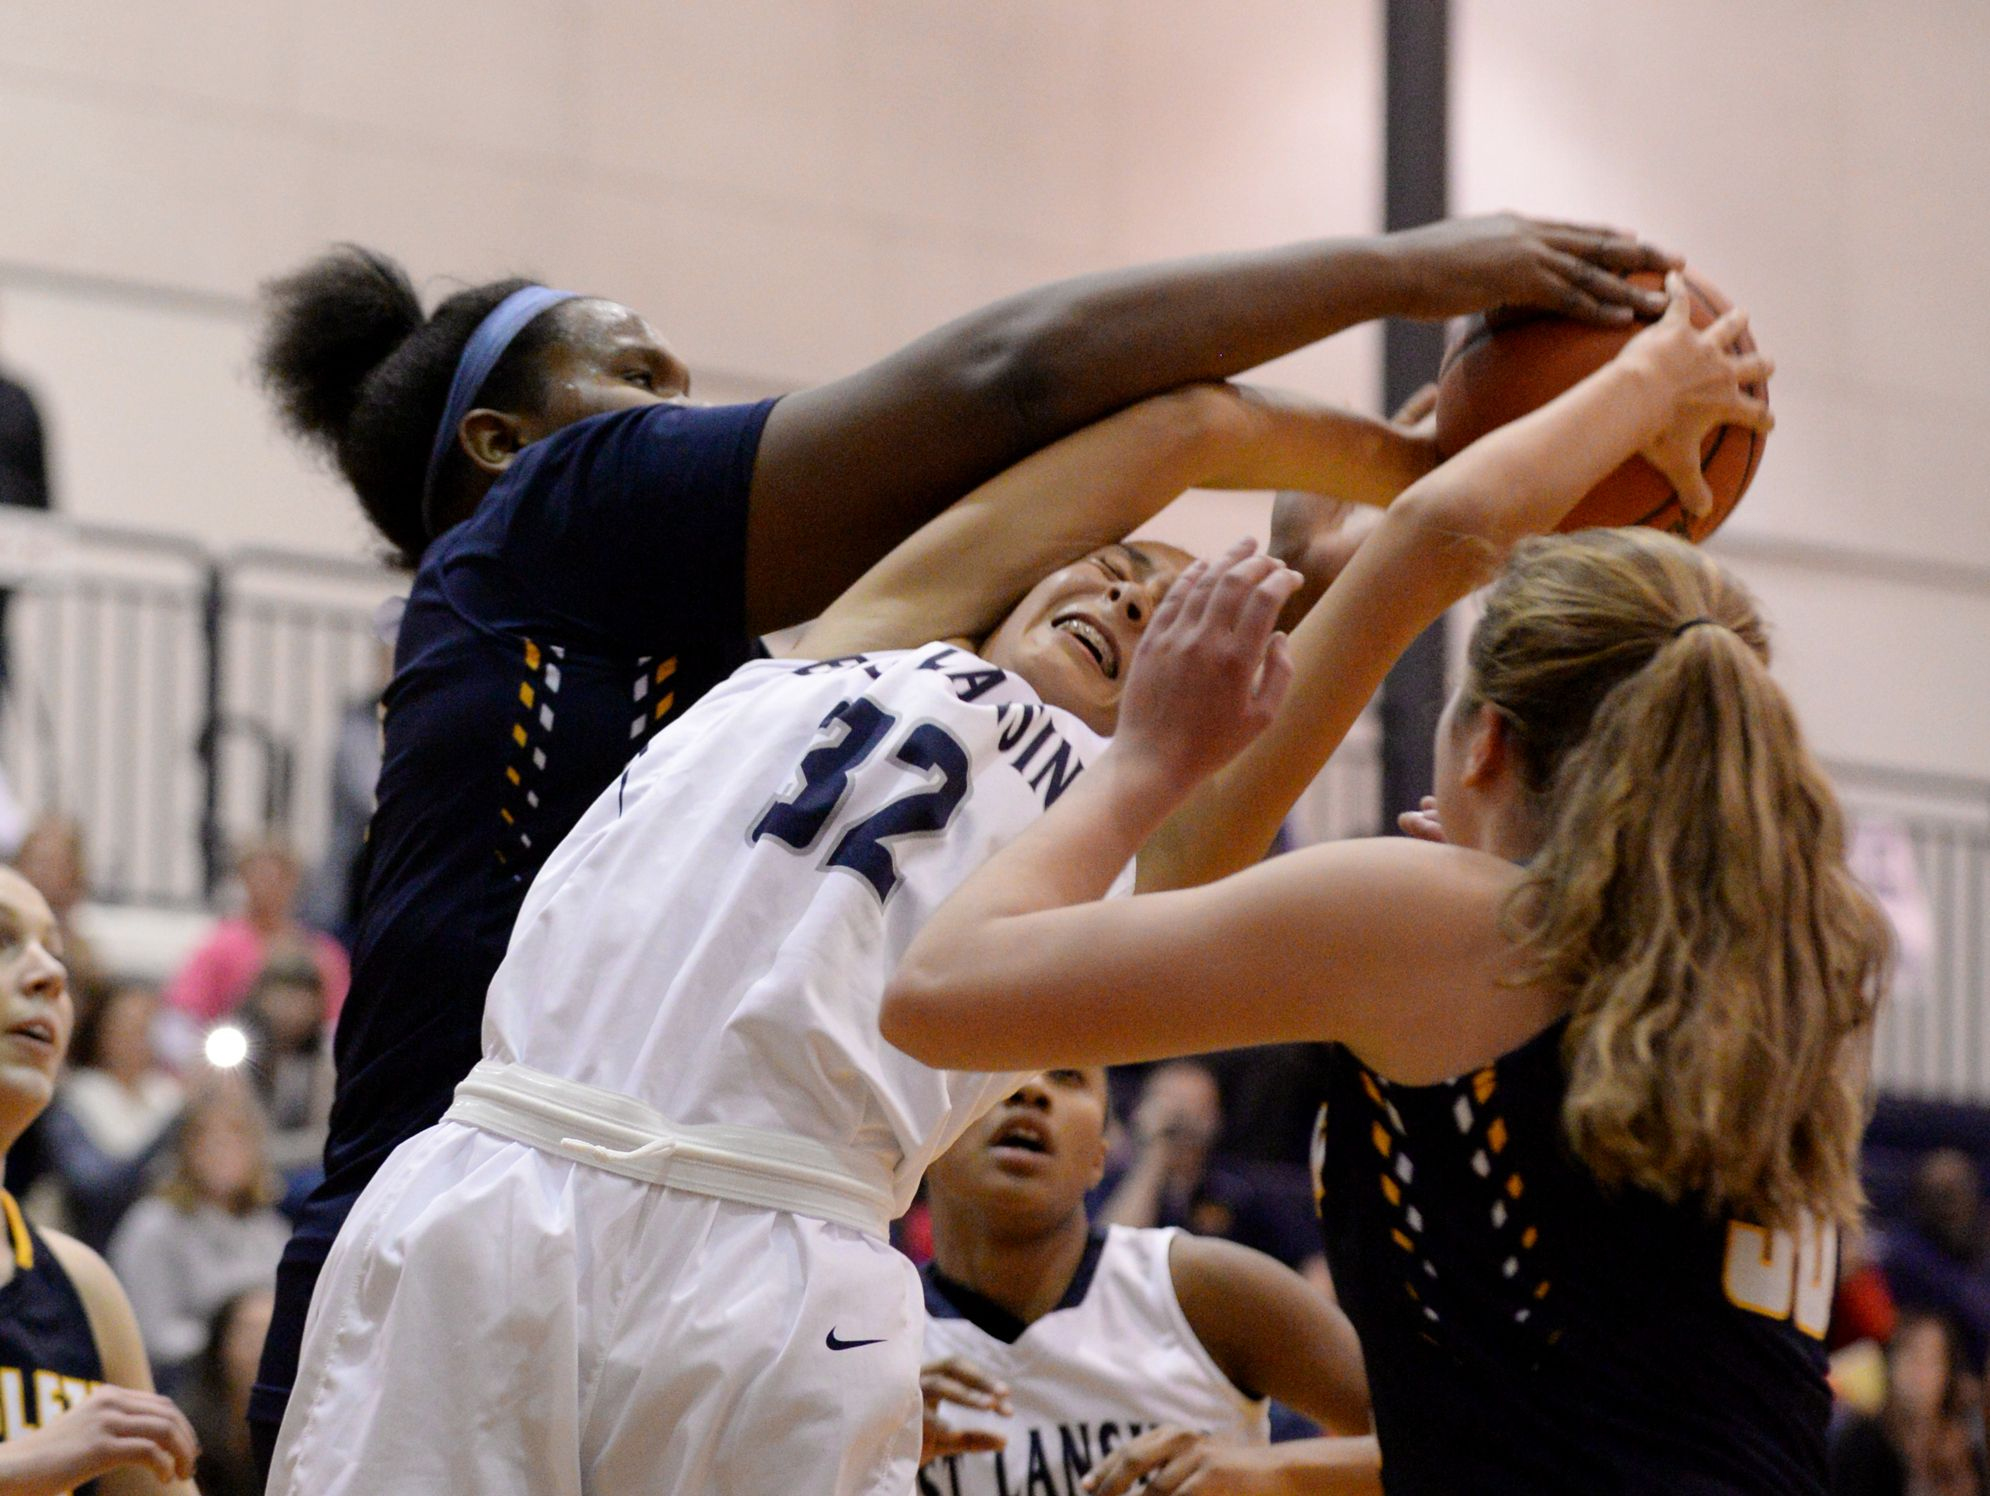 East Lansing's Aaliyah Nye and Haslett's Imania Baker go up for the rebound during the game against Haslett on Tuesday, Dec. 13, 2016 at East Lansing High School. East Lansing won, 60-50.